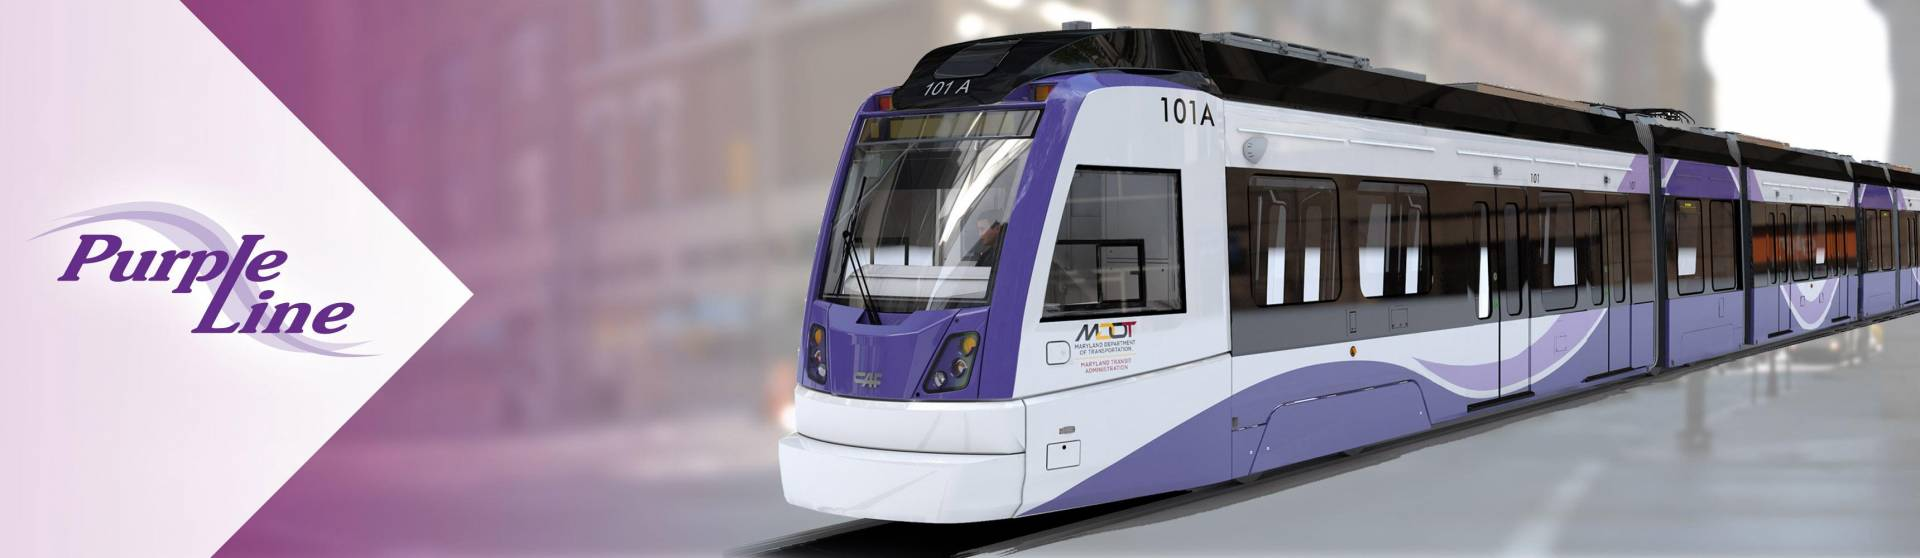 Purple Line train rendering in city setting. Purple Line logo to left of image.